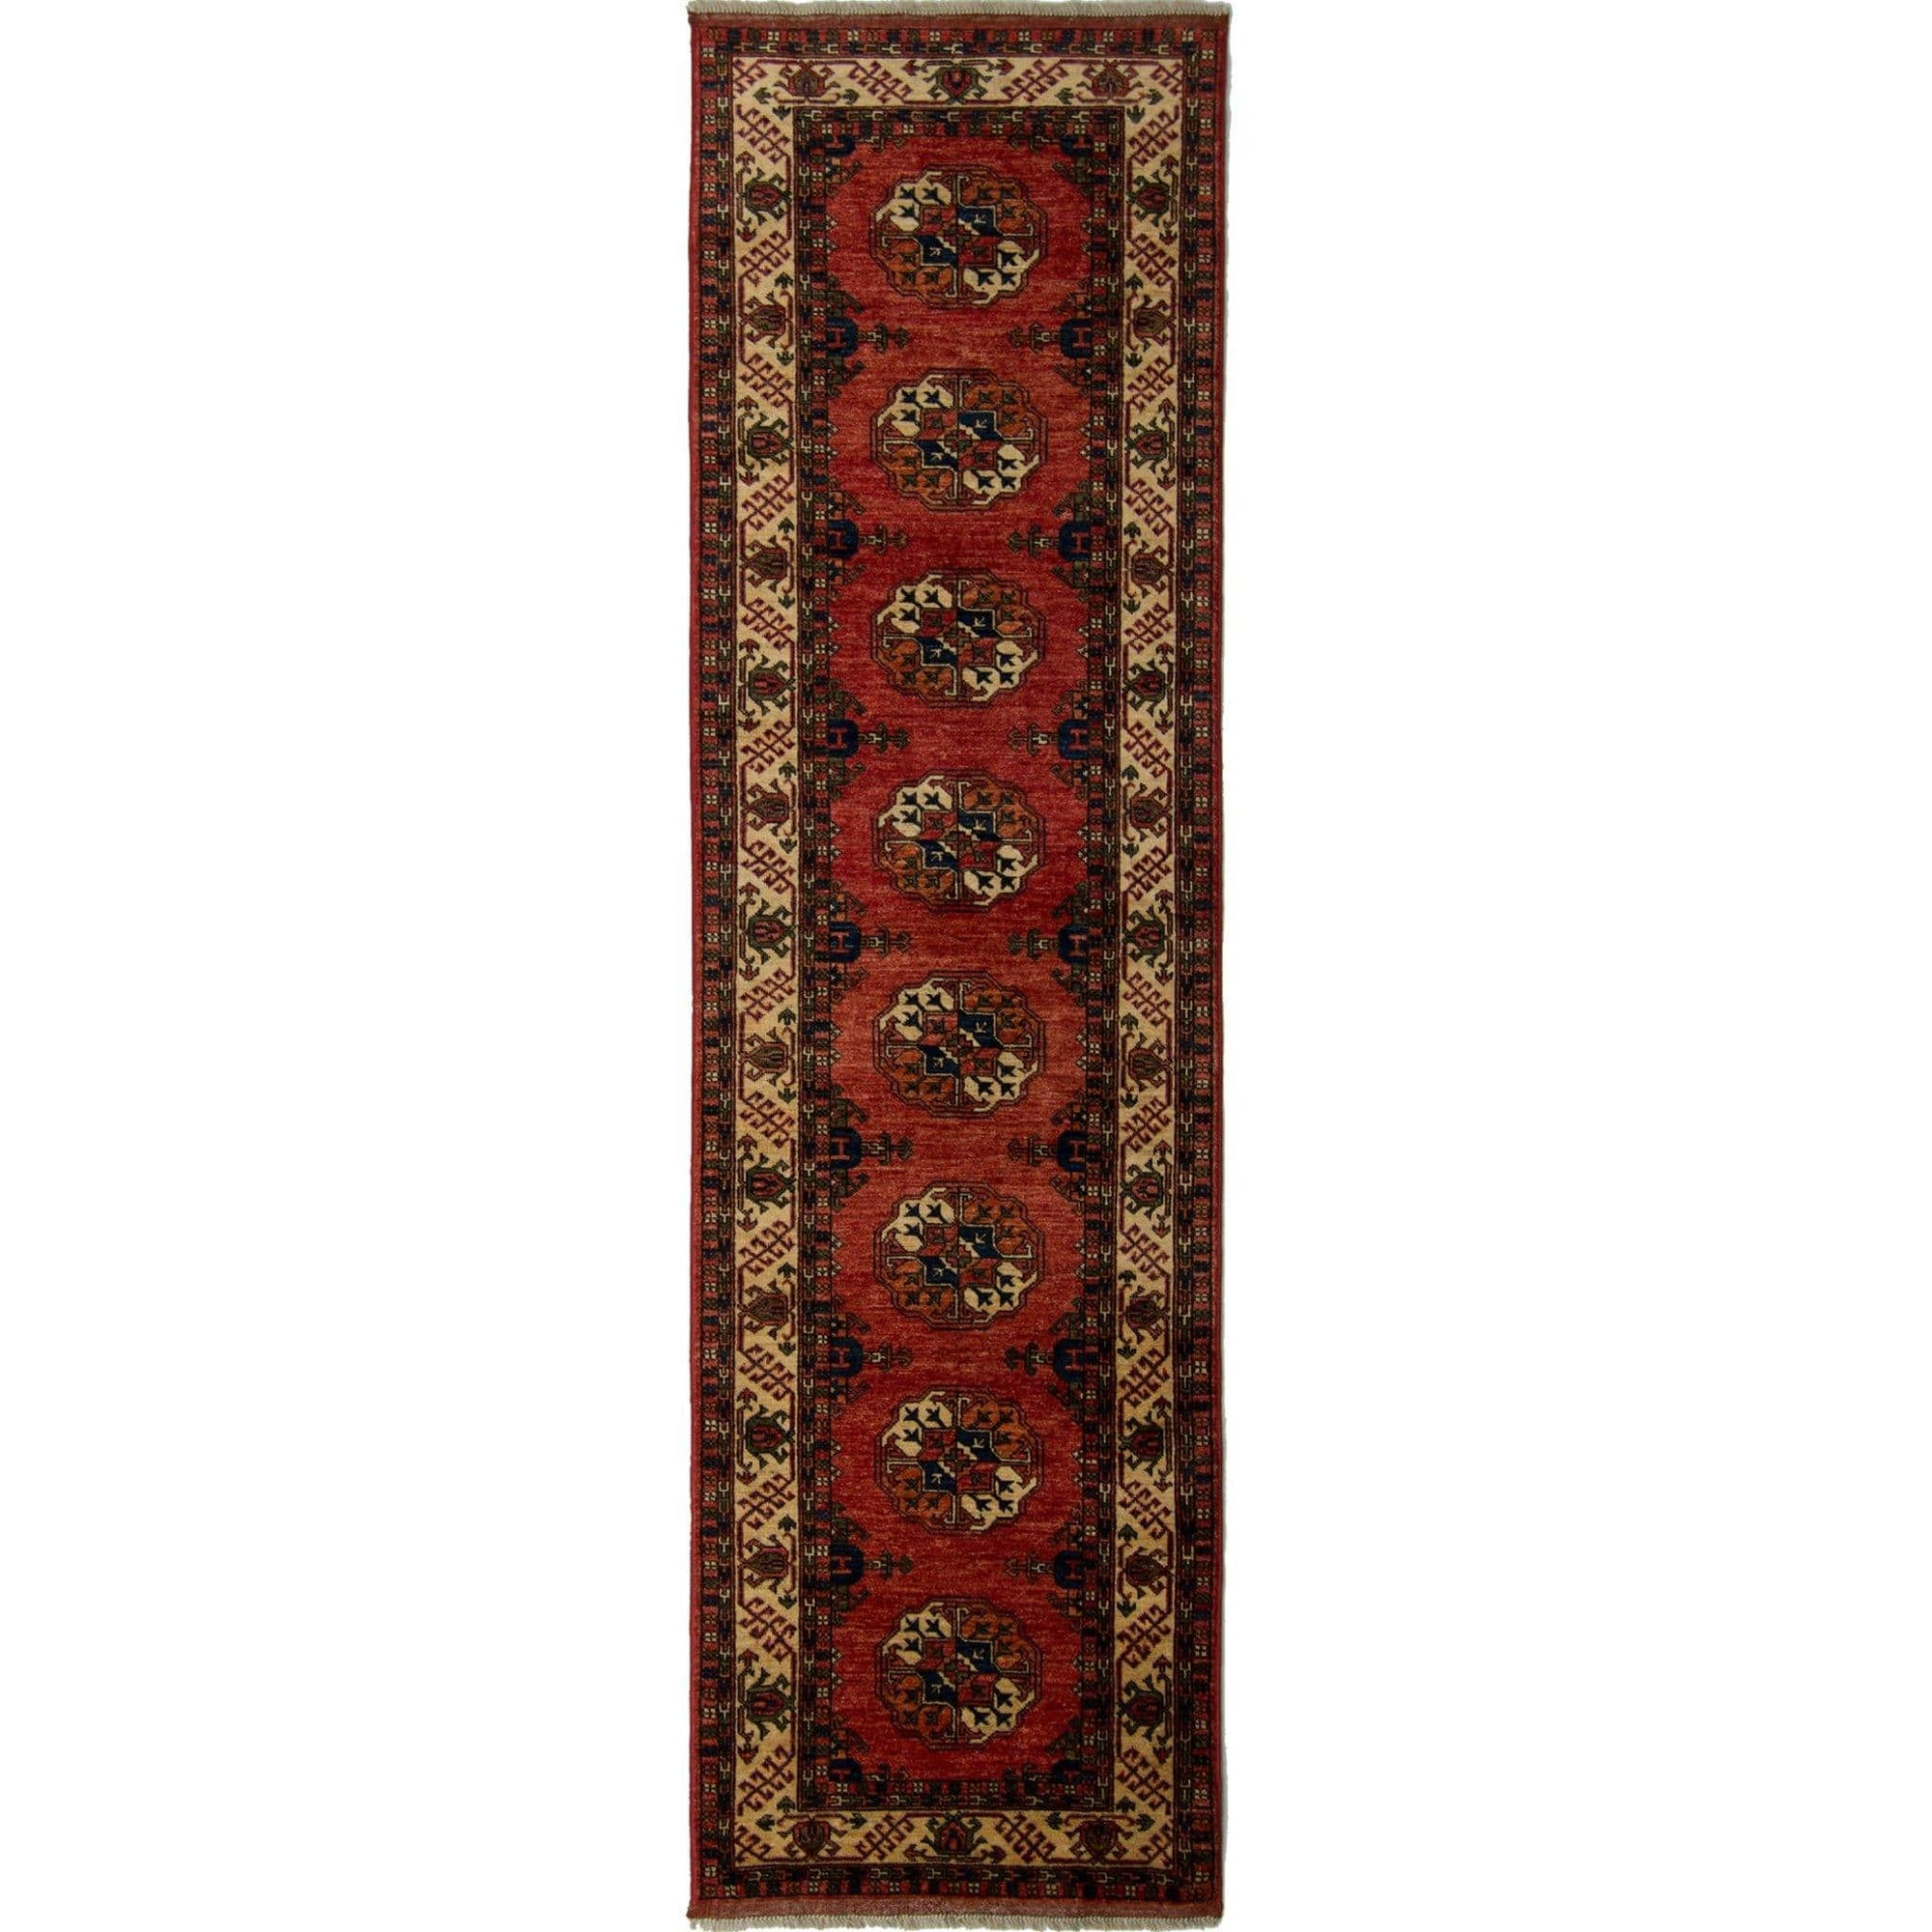 Fine Hand-knotted Tribal 100% Wool Runner 84cm x 299cm Persian-Rug | House-of-Haghi | NewMarket | Auckland | NZ | Handmade Persian Rugs | Hand Knotted Persian Rugs